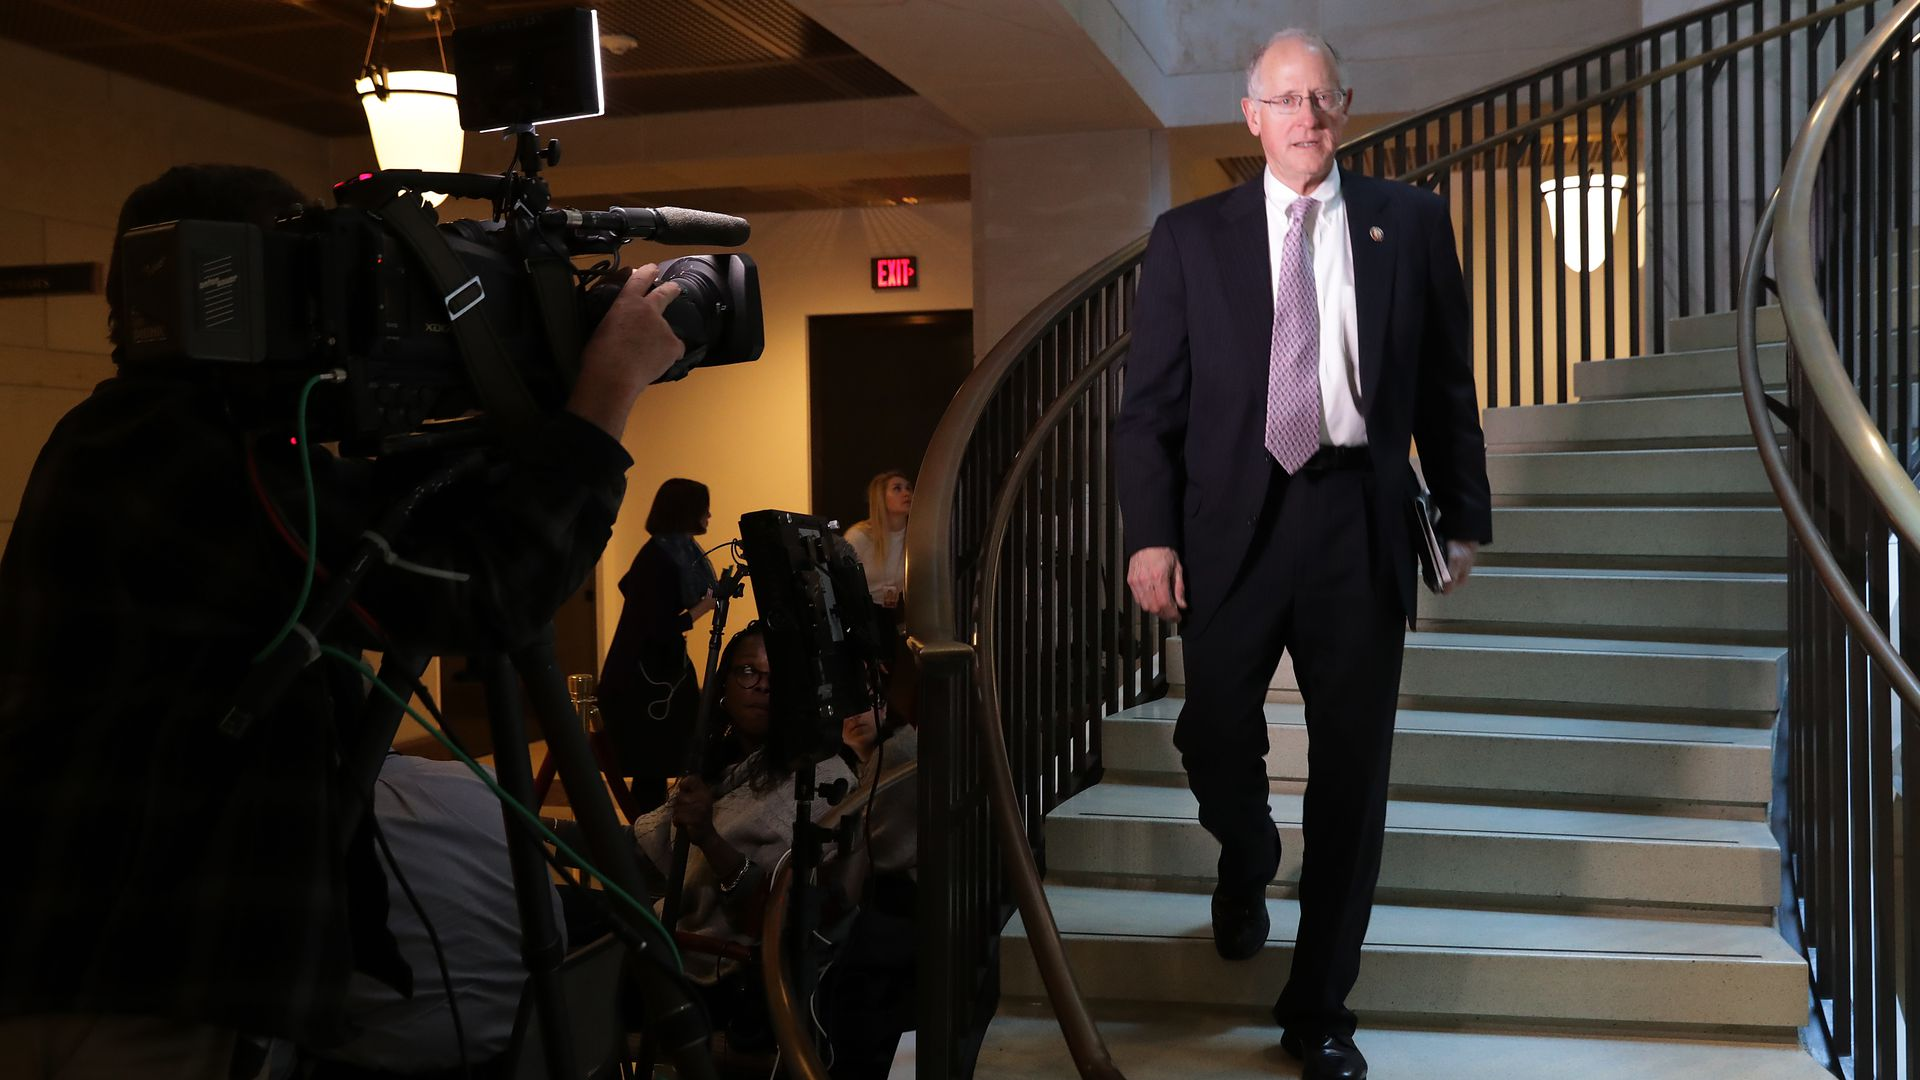 House Intelligence Committee member Rep. Mike Conaway (R-TX) returns to a closed-door hearing